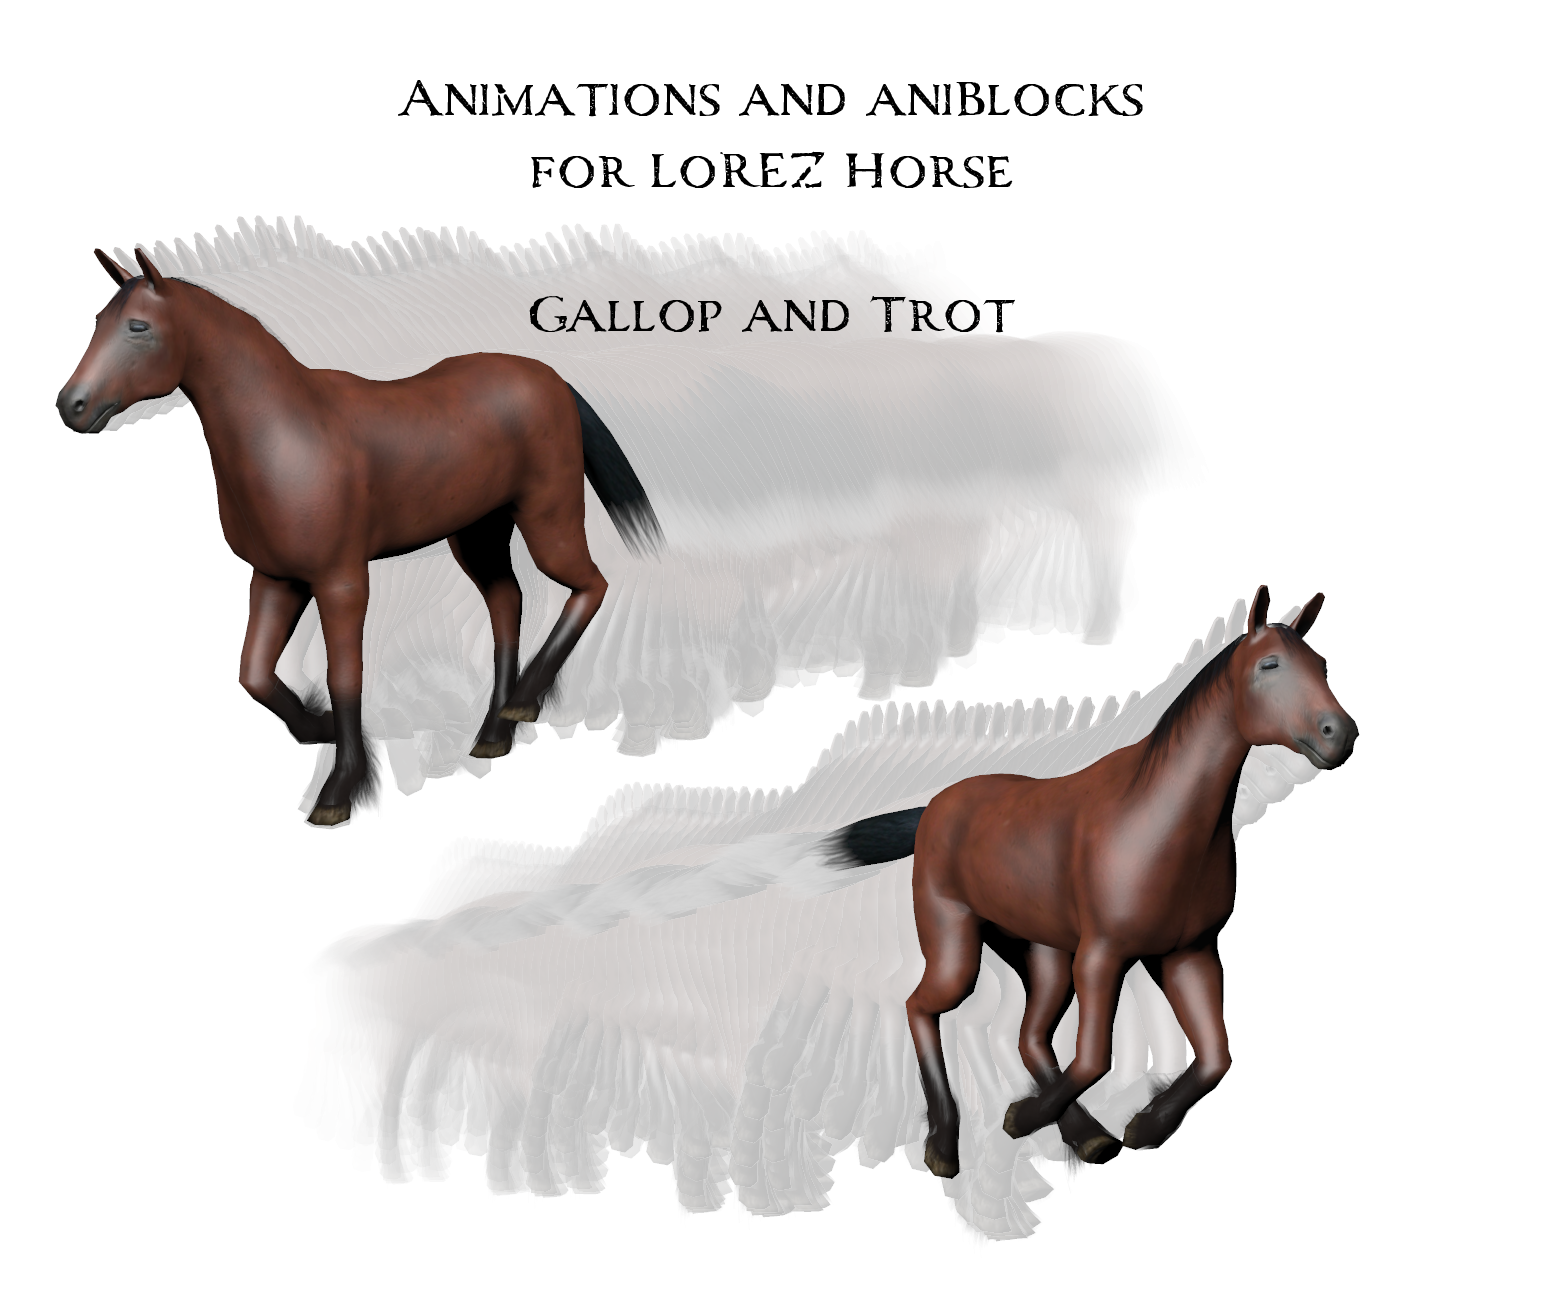 Animations and aniBlocks for LoRez Horse by anniemation